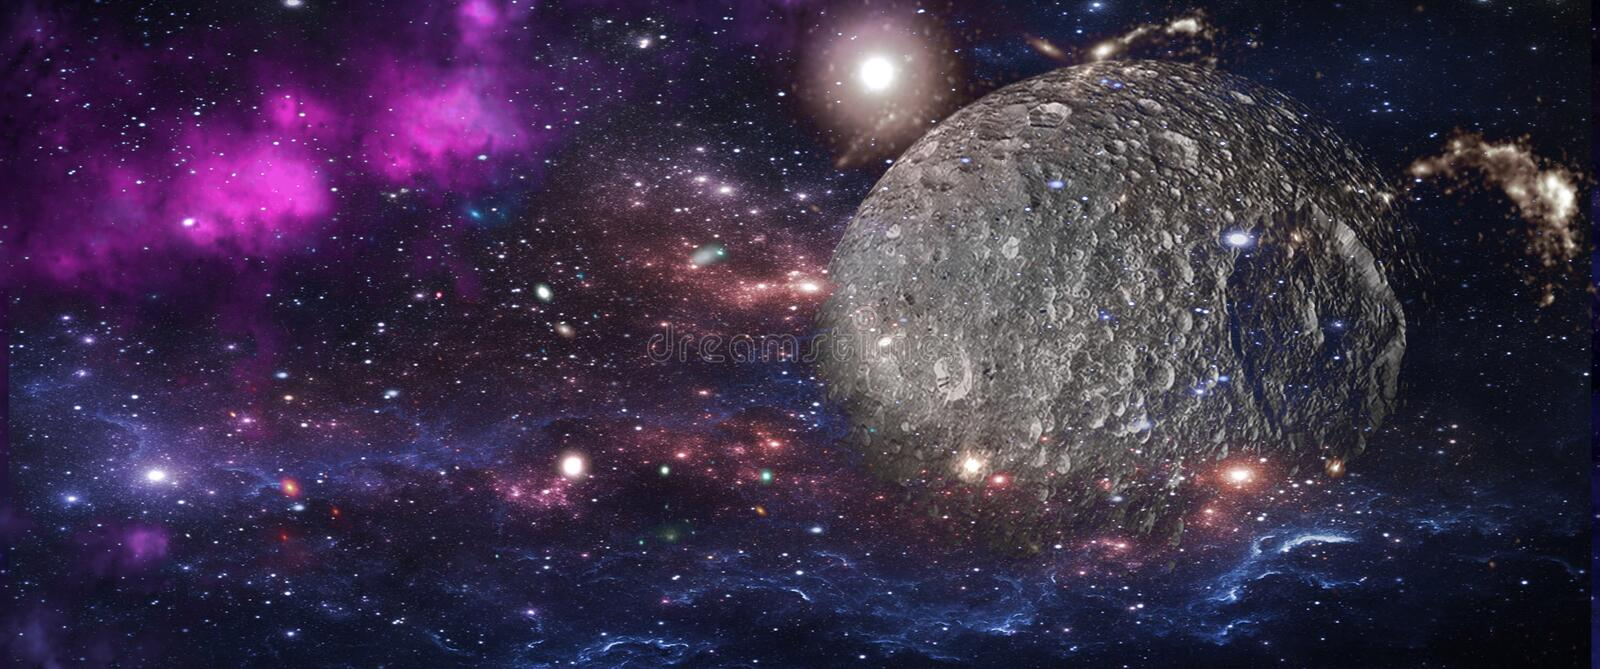 Planets and galaxies, science fiction wallpaper. Beauty of deep space. stock image